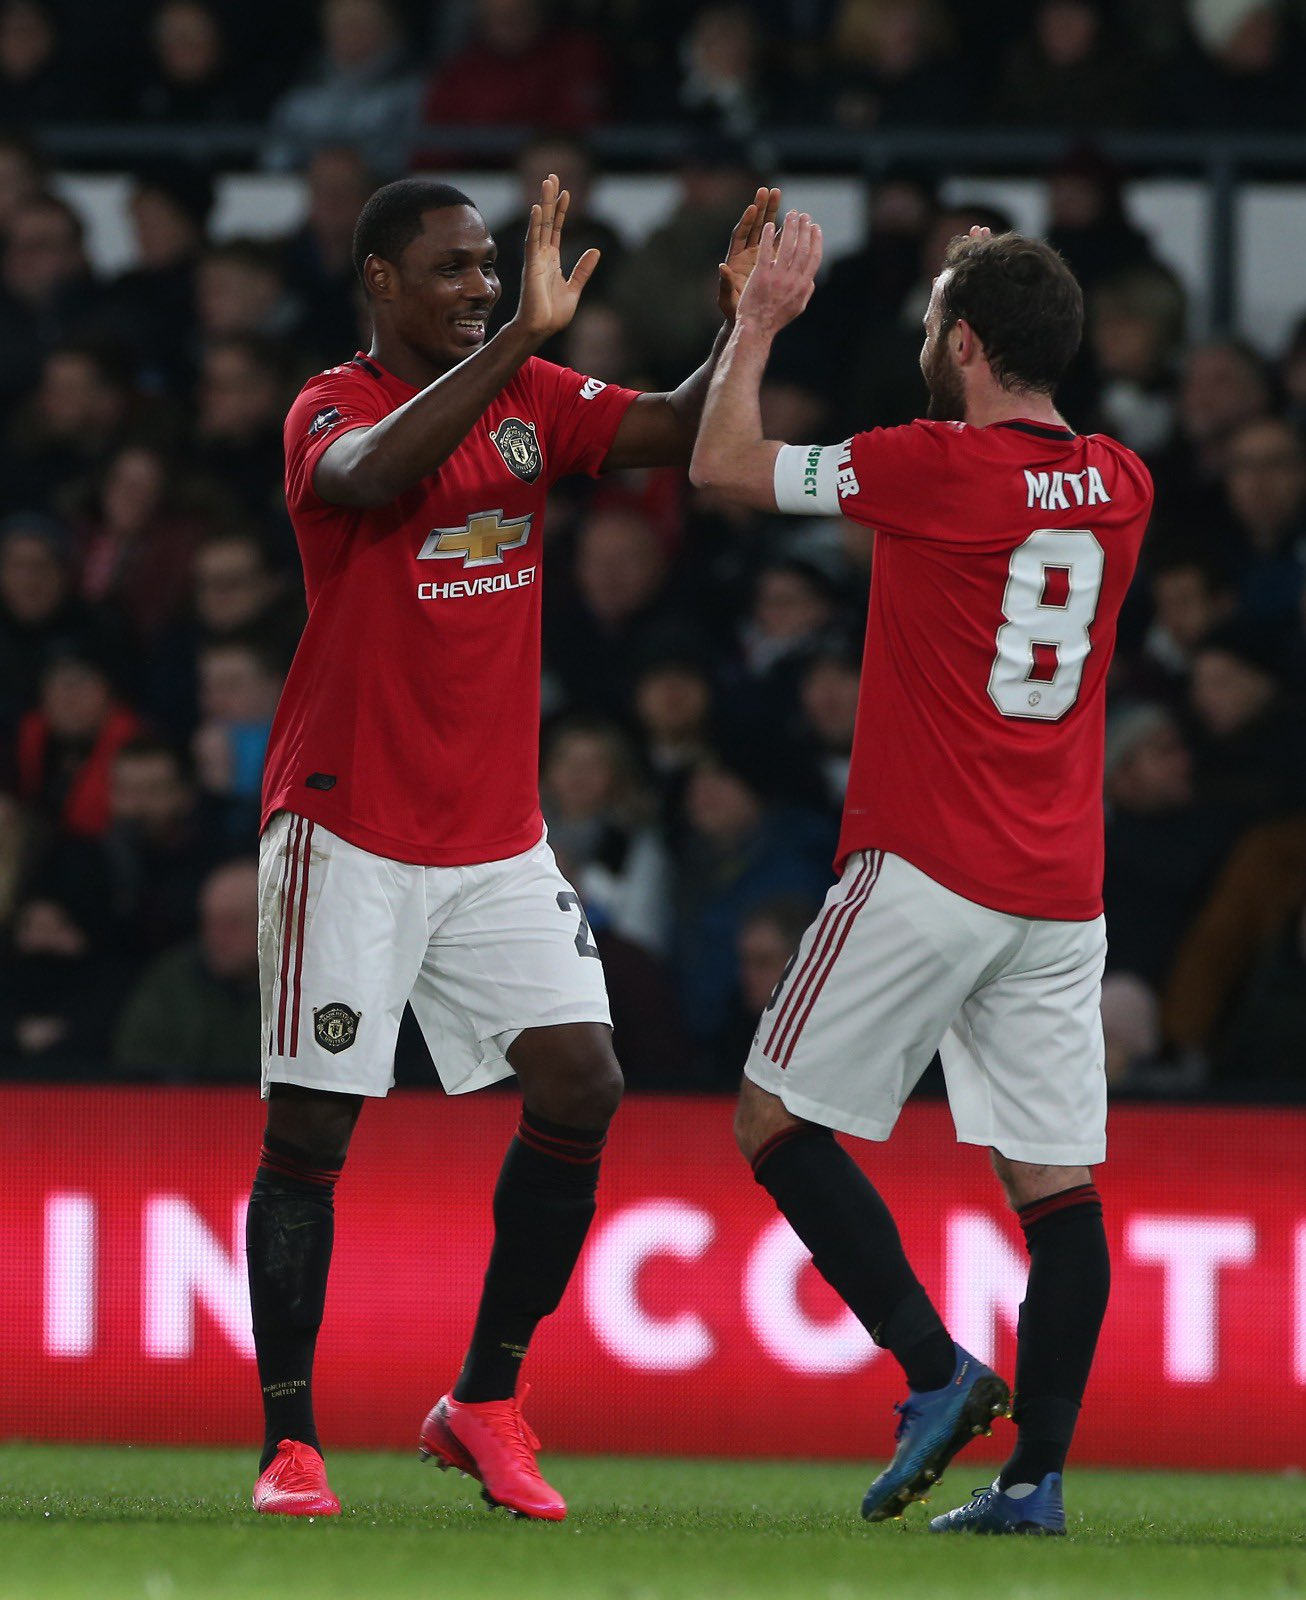 Ighalo Flaunts Special Bonding With The 'Loving Mata' At Man United